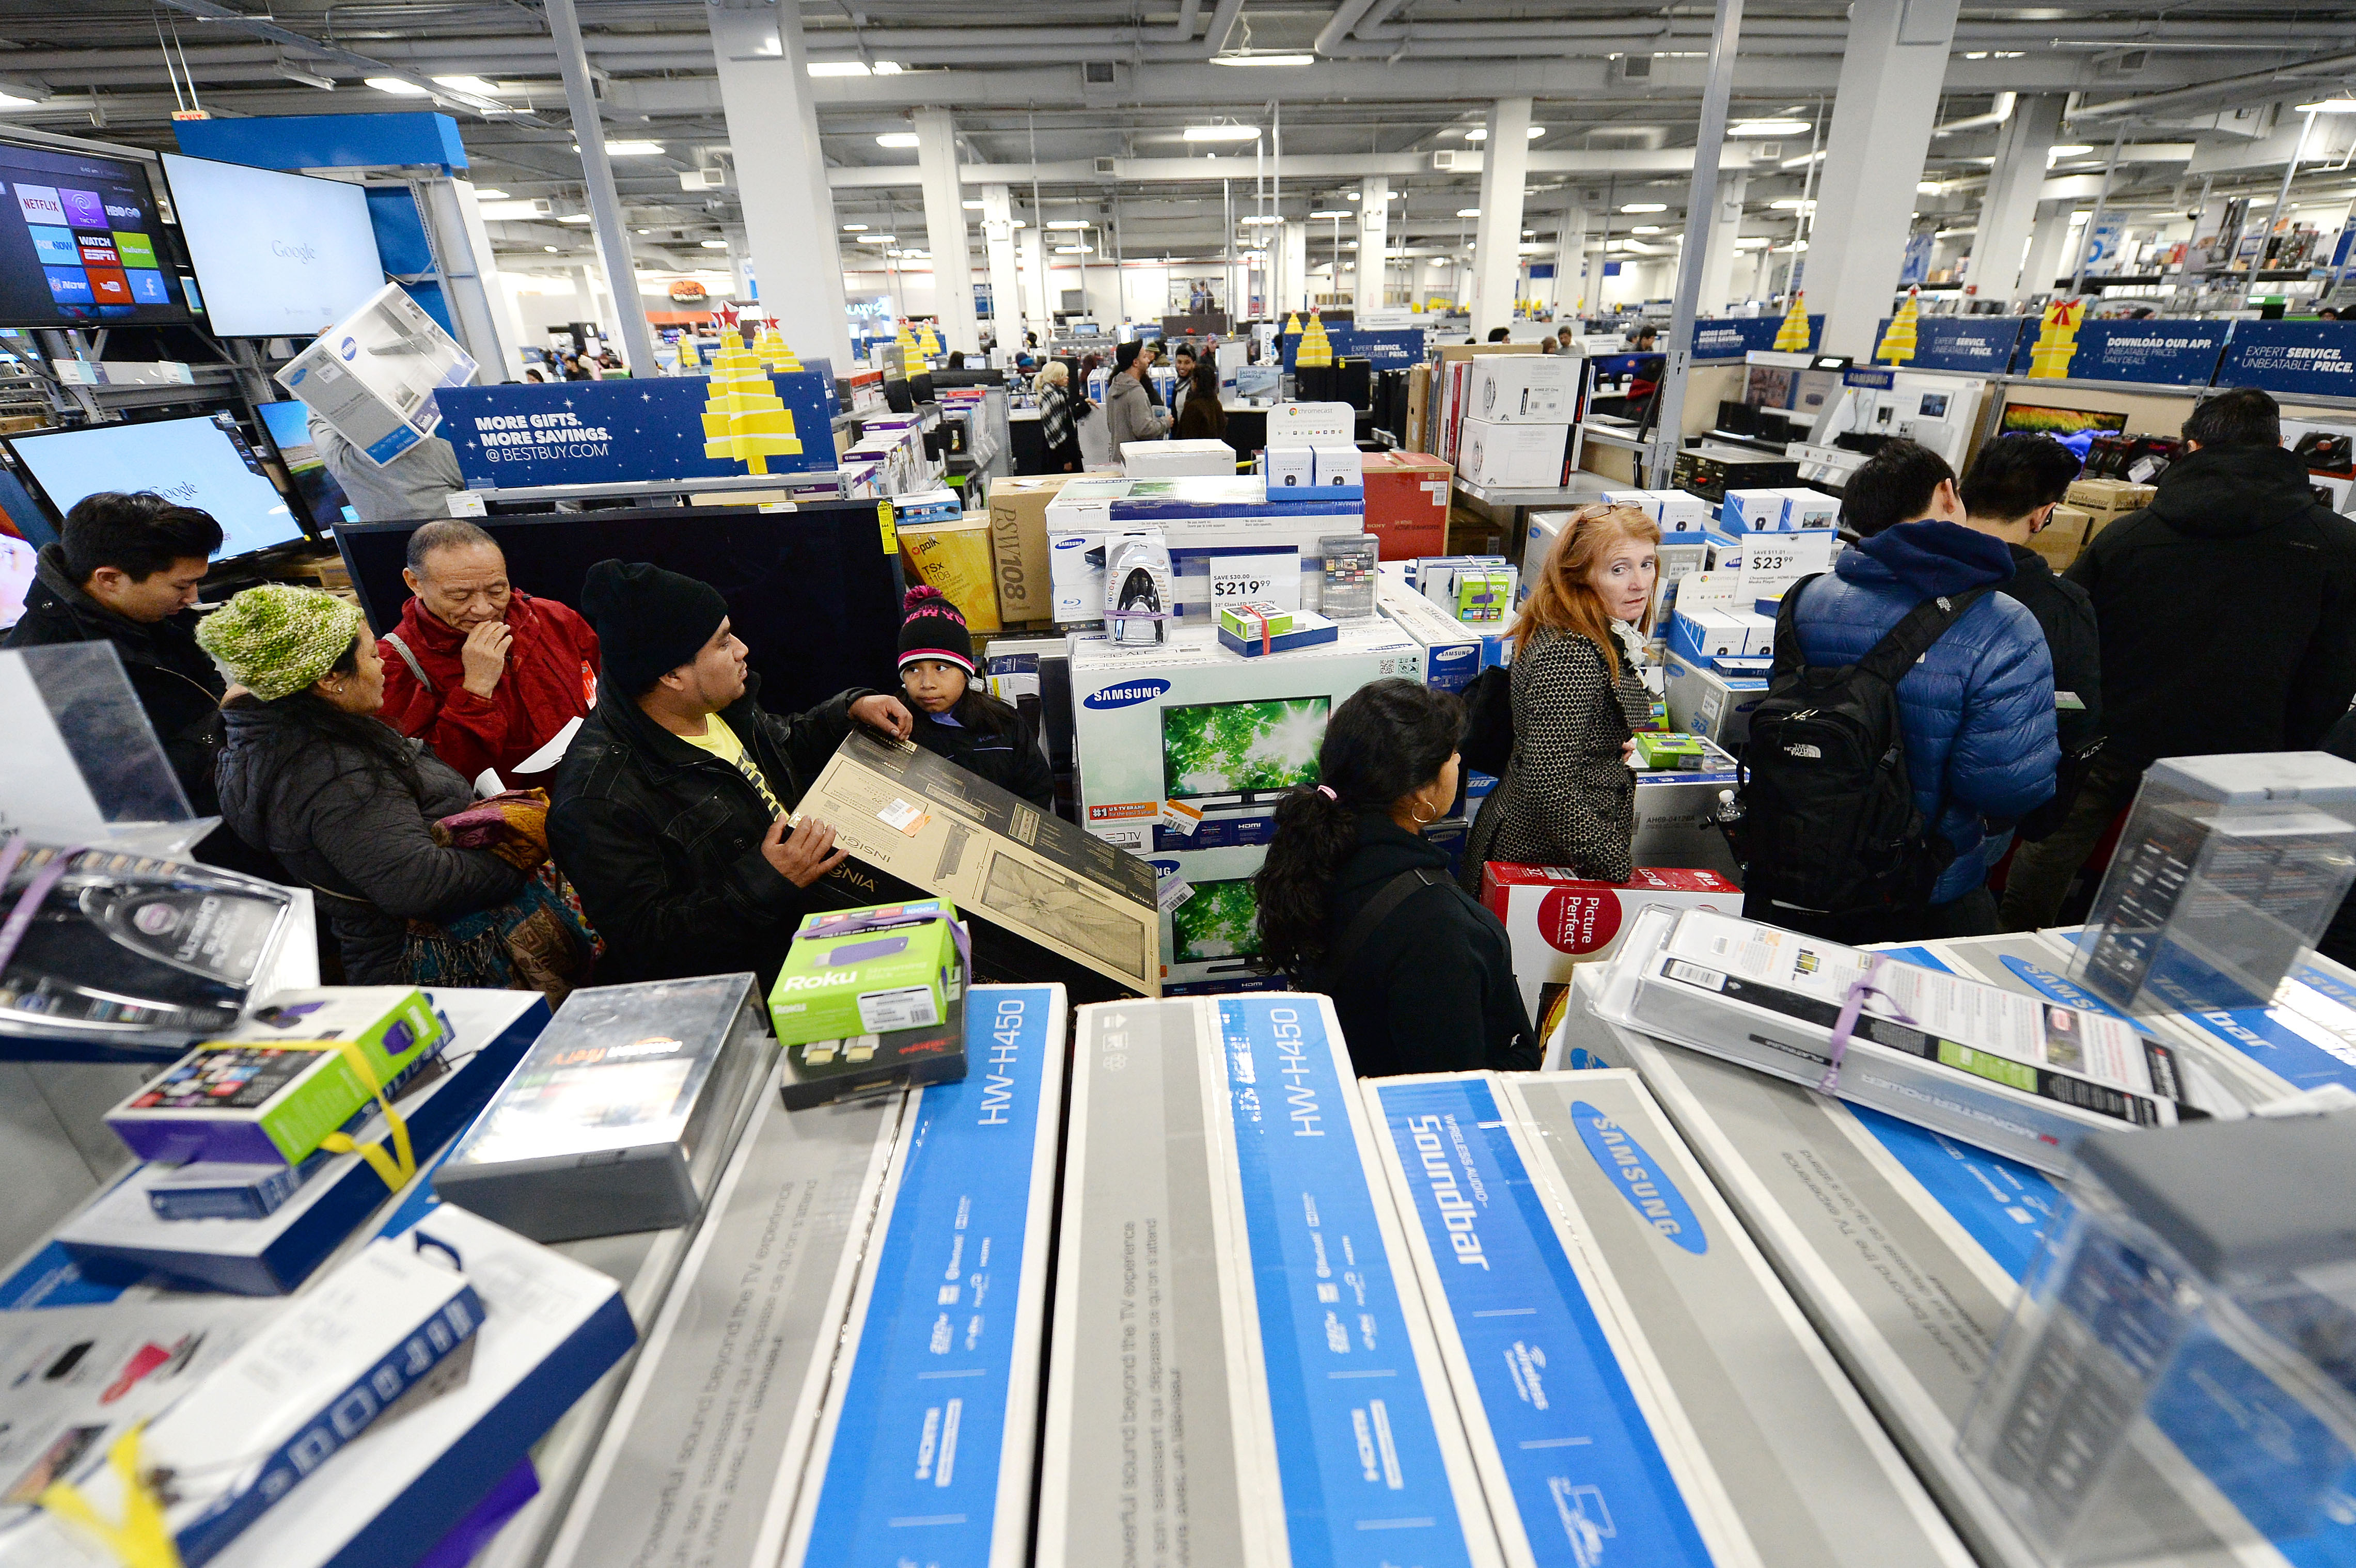 Shoppers wait in line at a Best Buy electronics store in Queens on  Black Friday  Nov. 28, 2014.